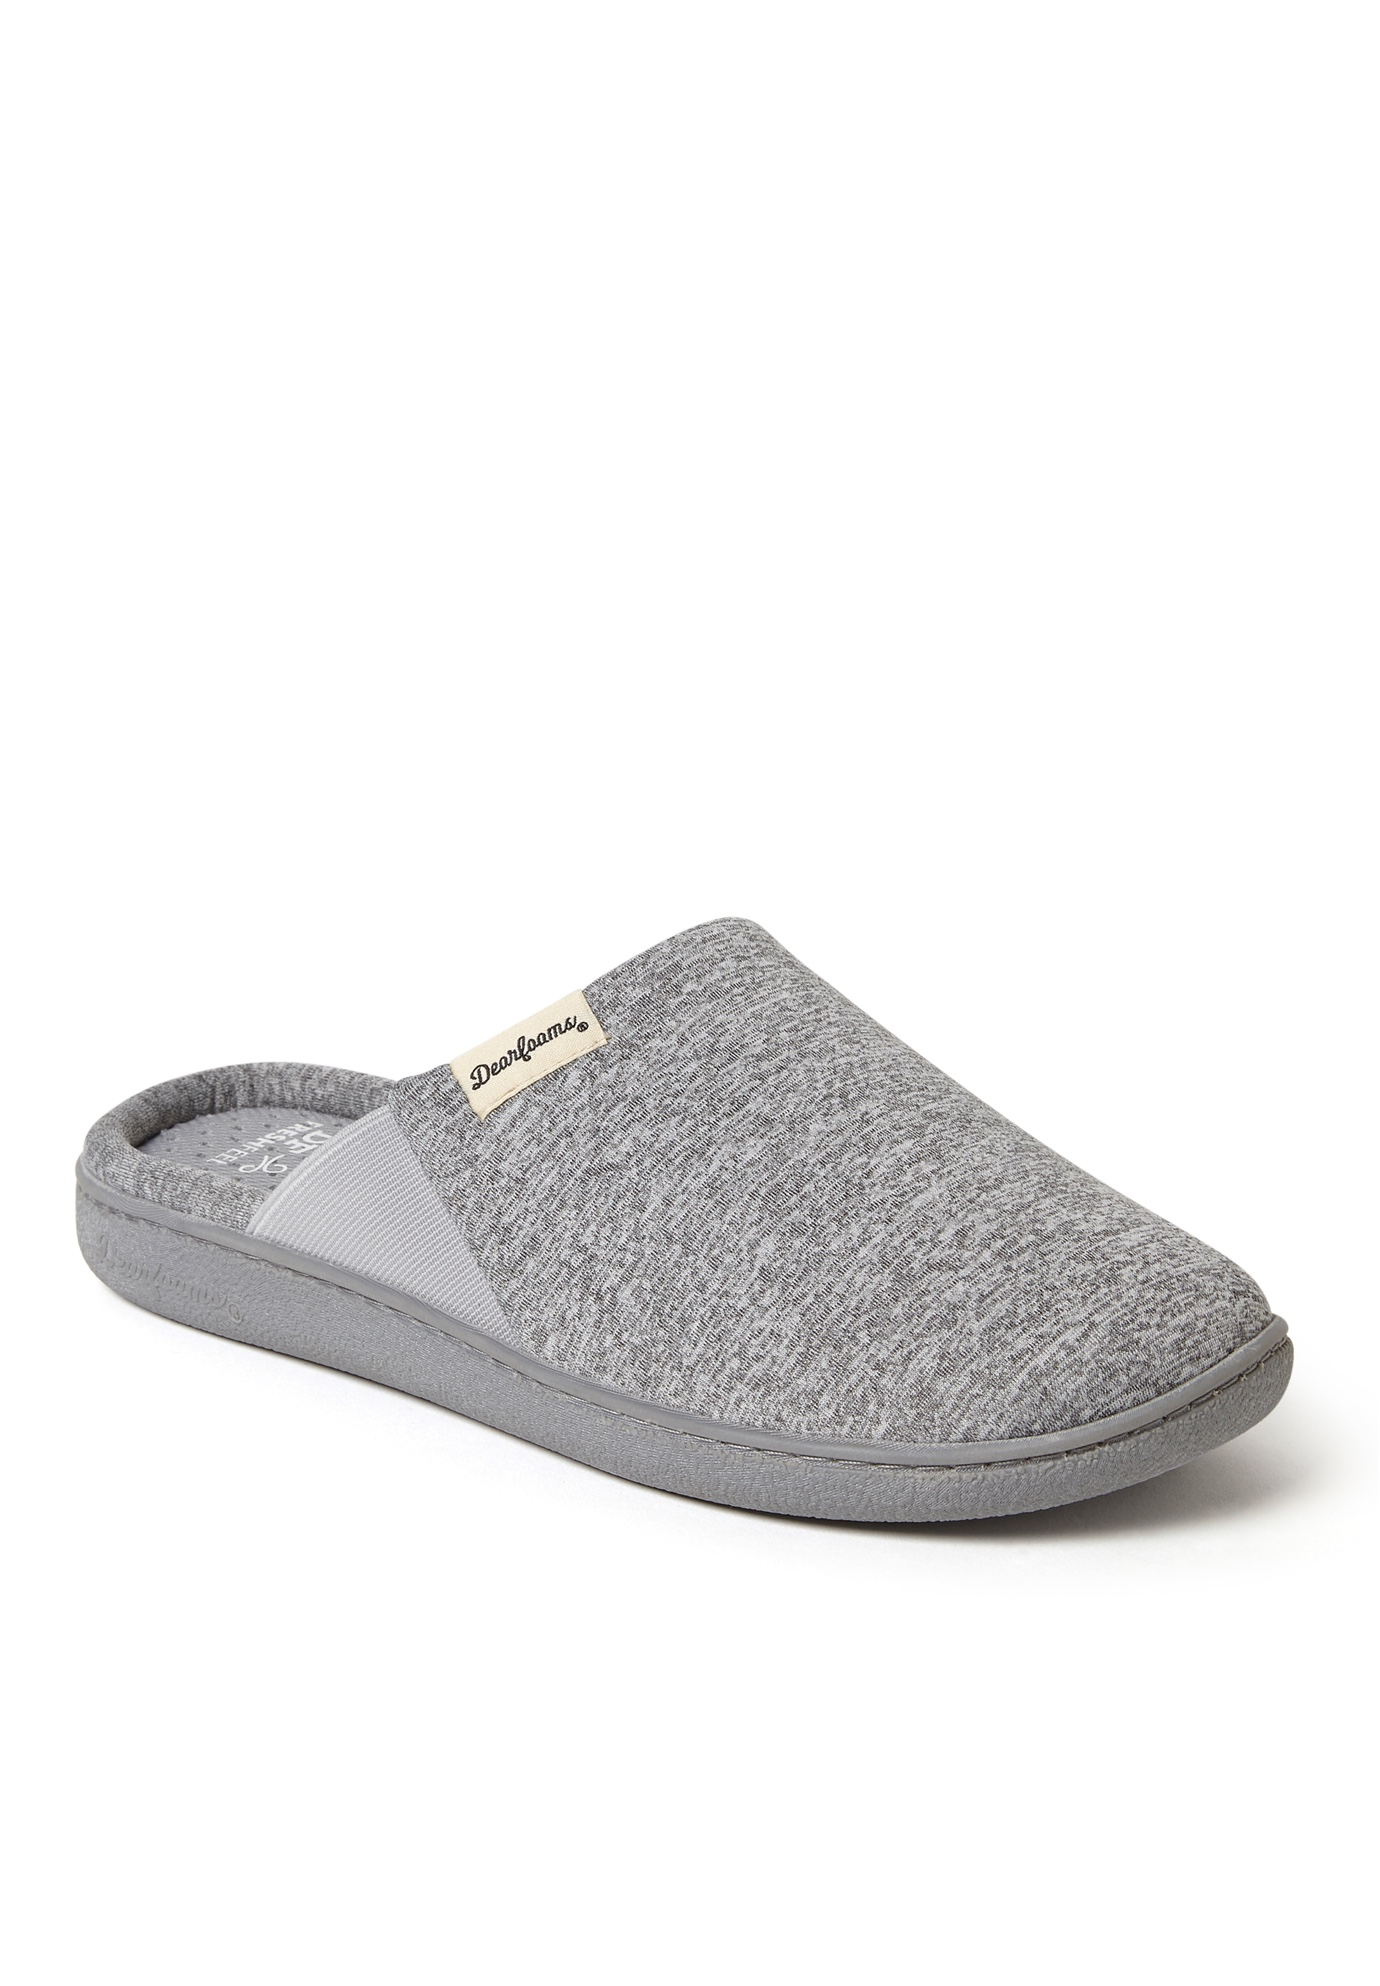 Dearfoam Stephanie Knit Closed Toe Scuff,